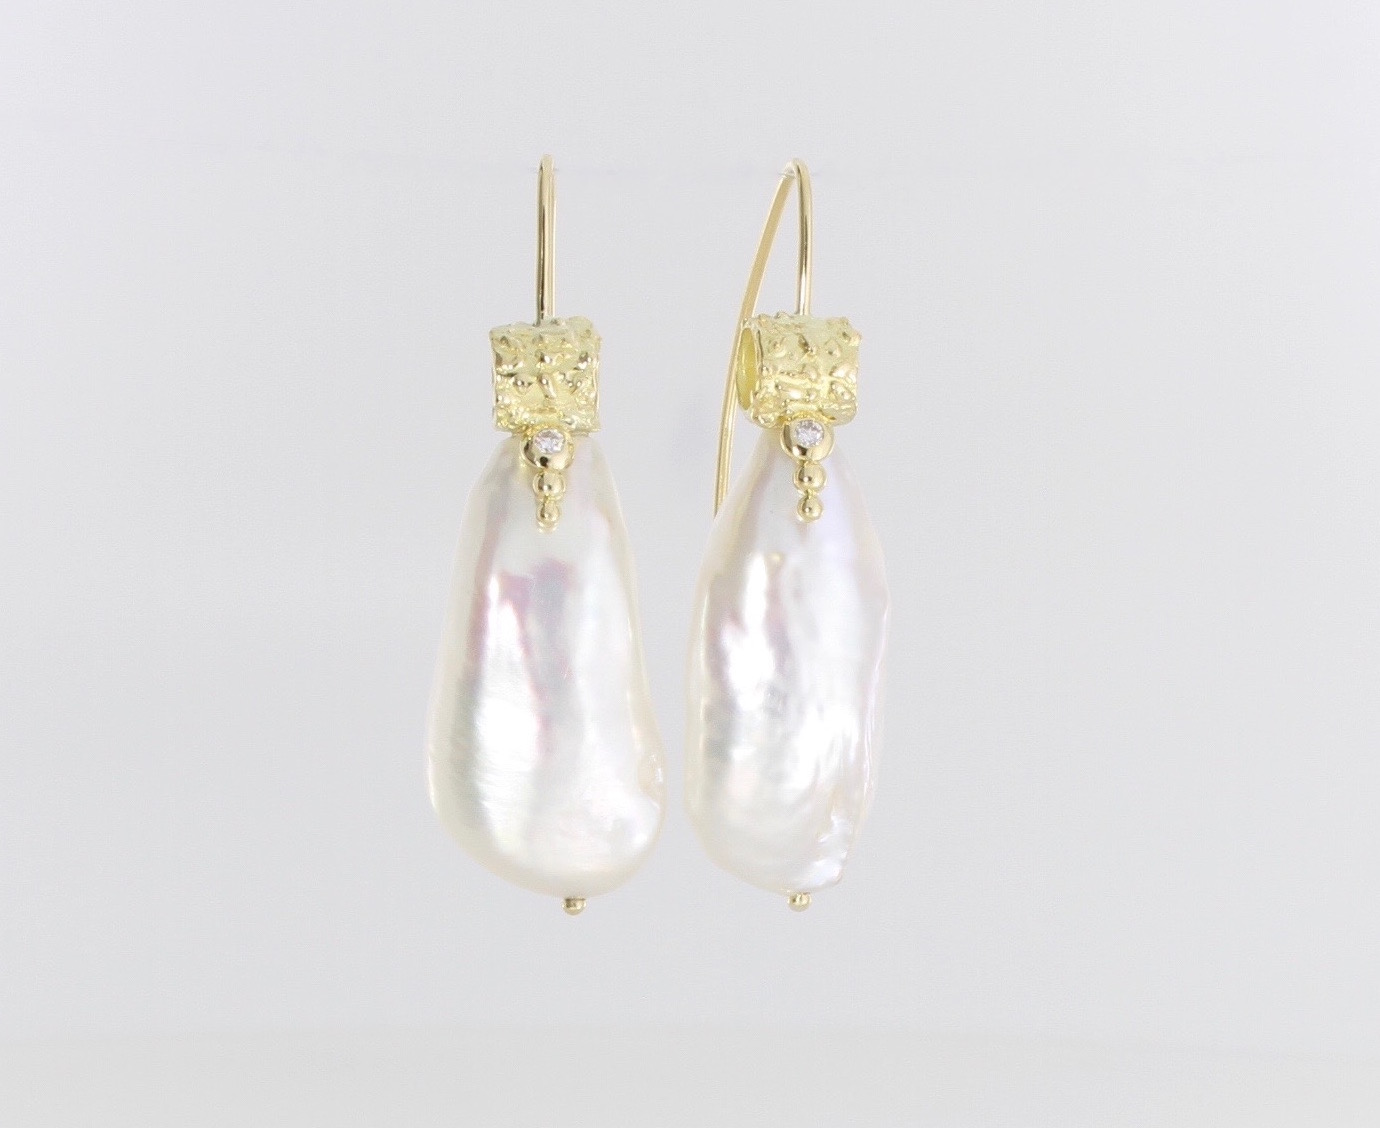 Payet gallery earrings